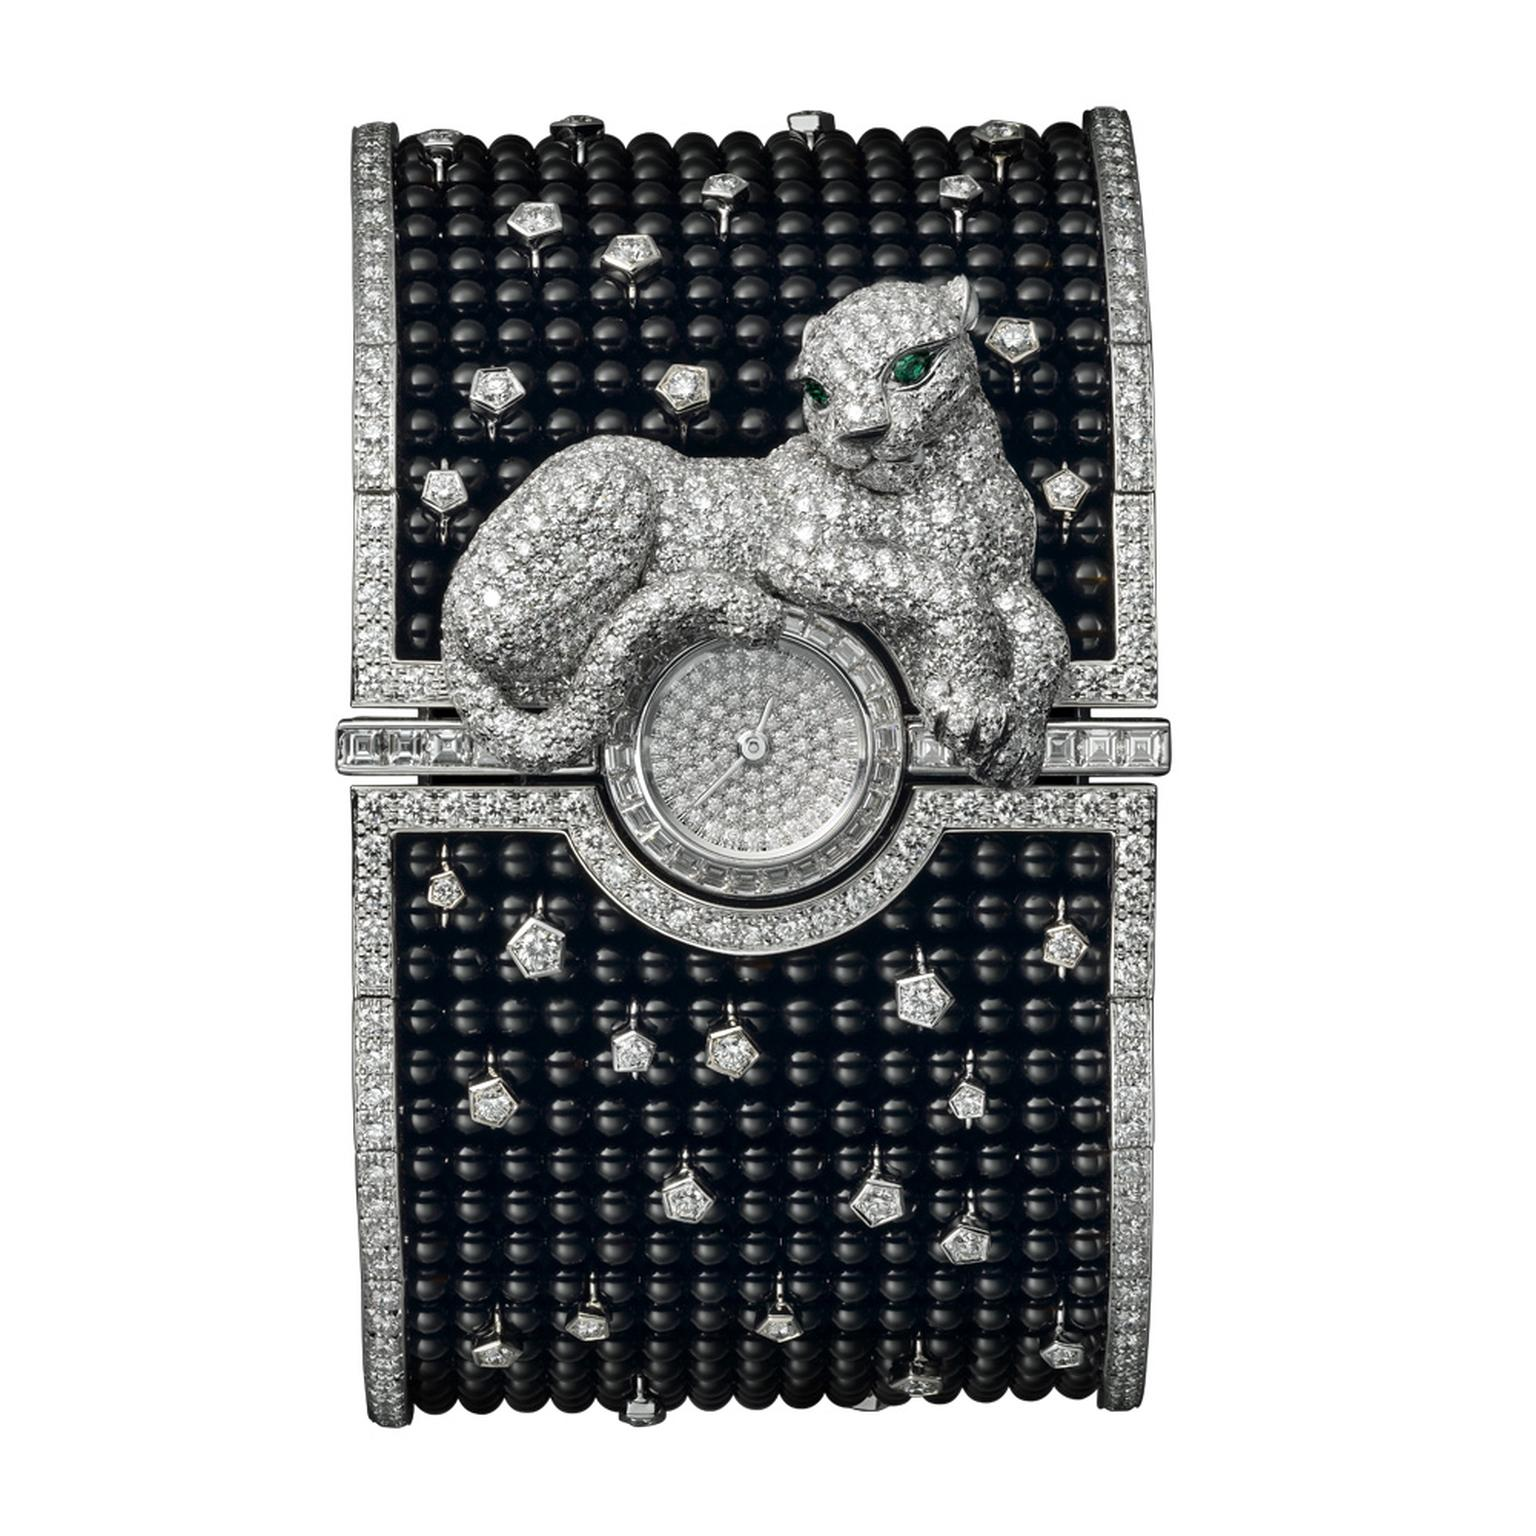 Cartier Panthère Cuff watch